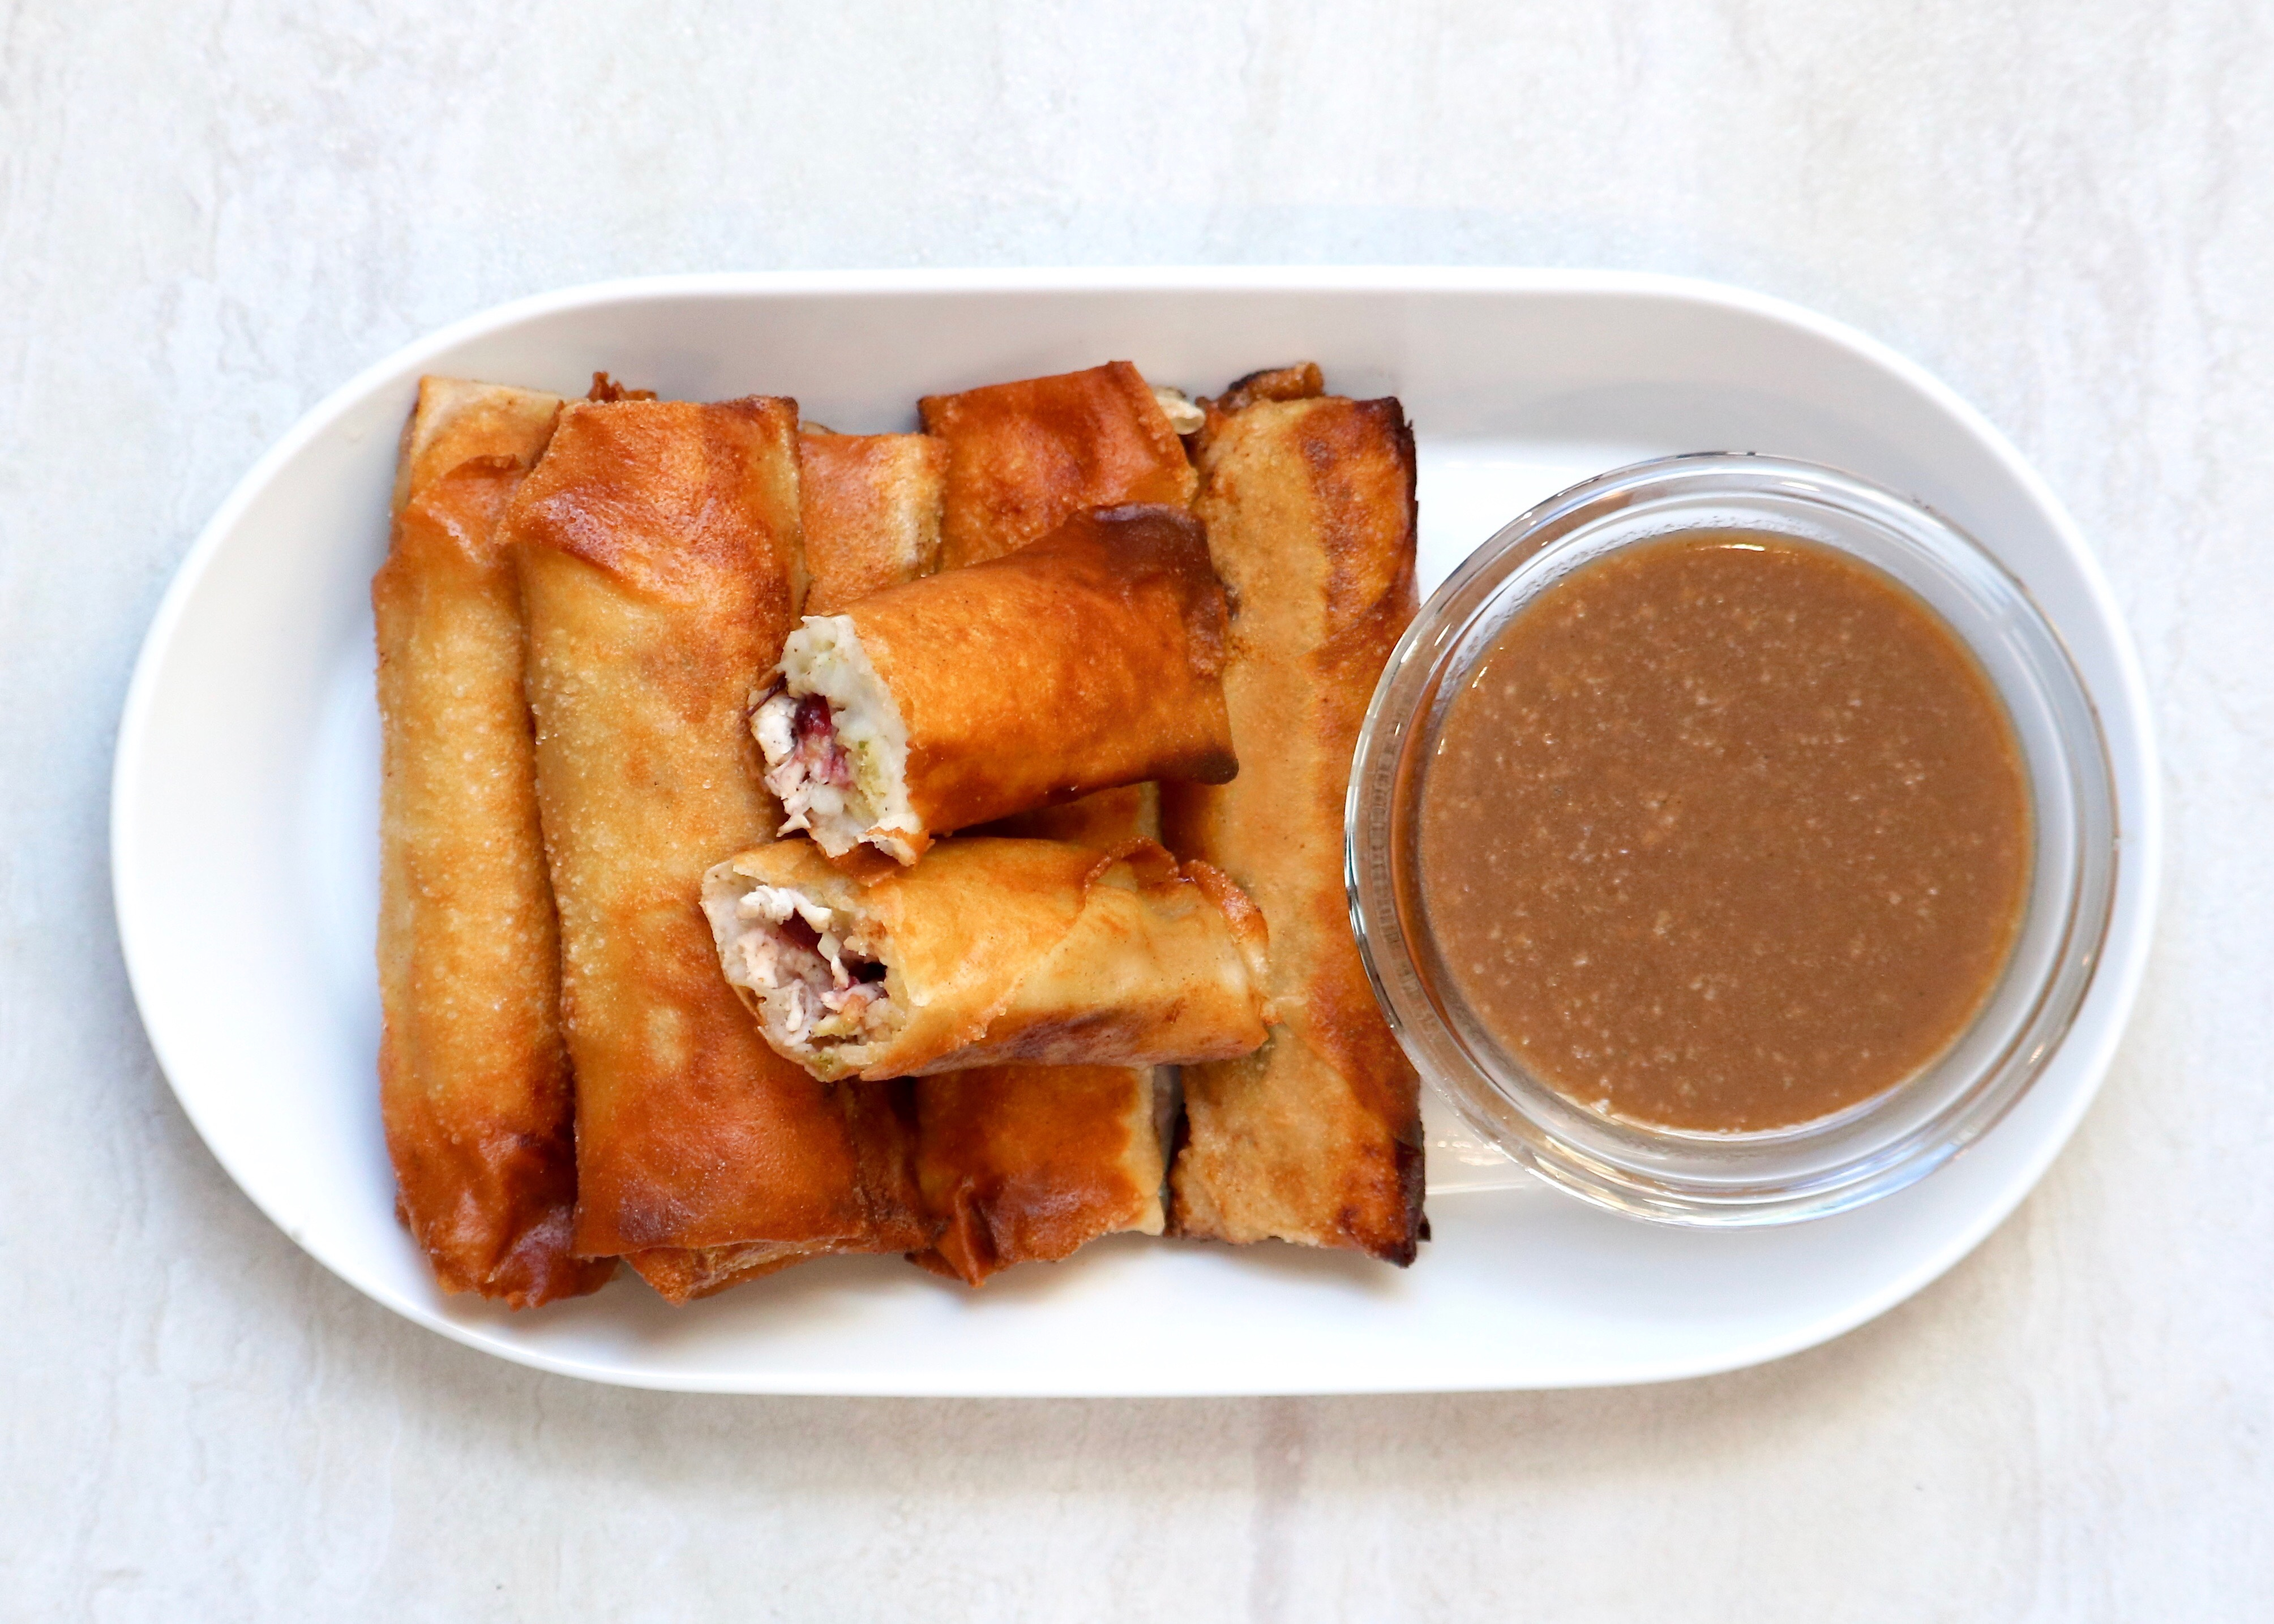 Thanksgiving Spring Rolls w/ Tony Chachere's Brown Gravy Dipping Sauce